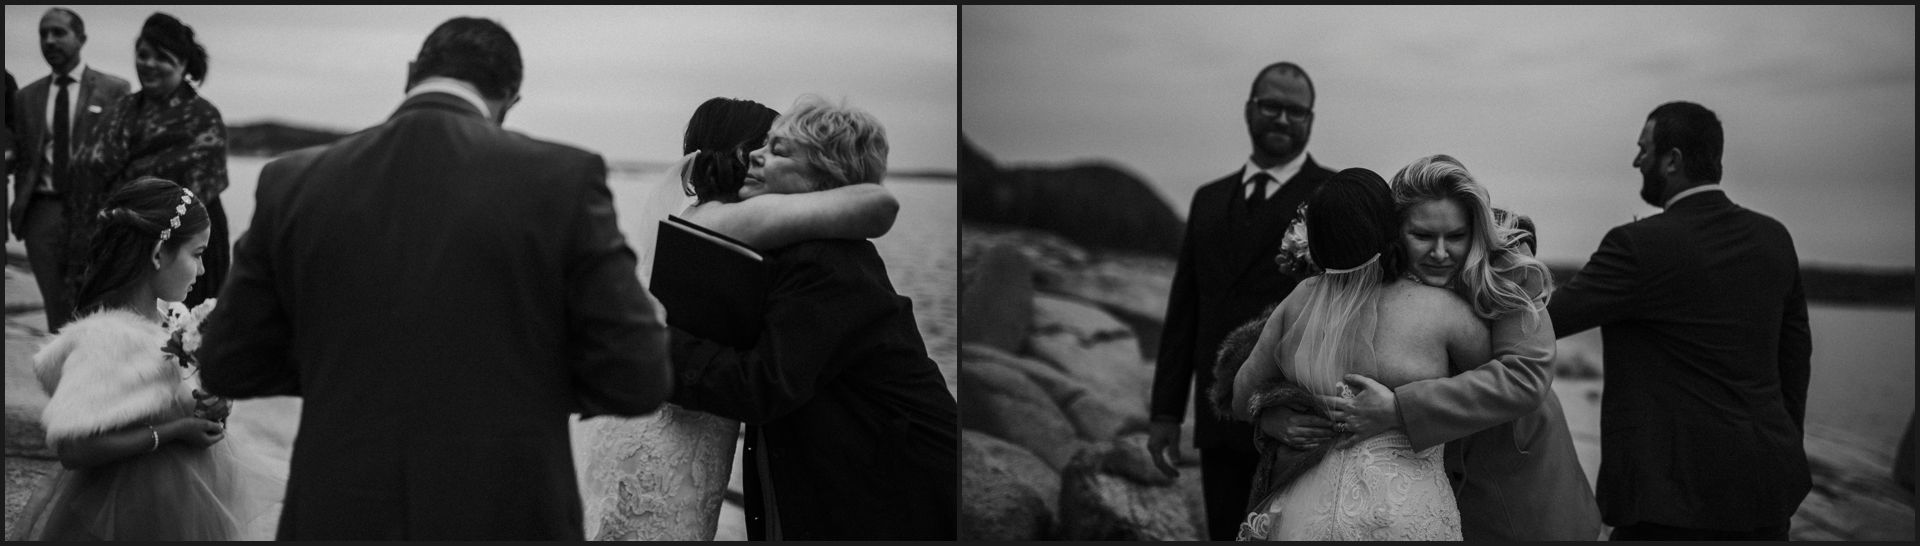 black and white, bride, groom, maine wedding, hugs, wedding guests